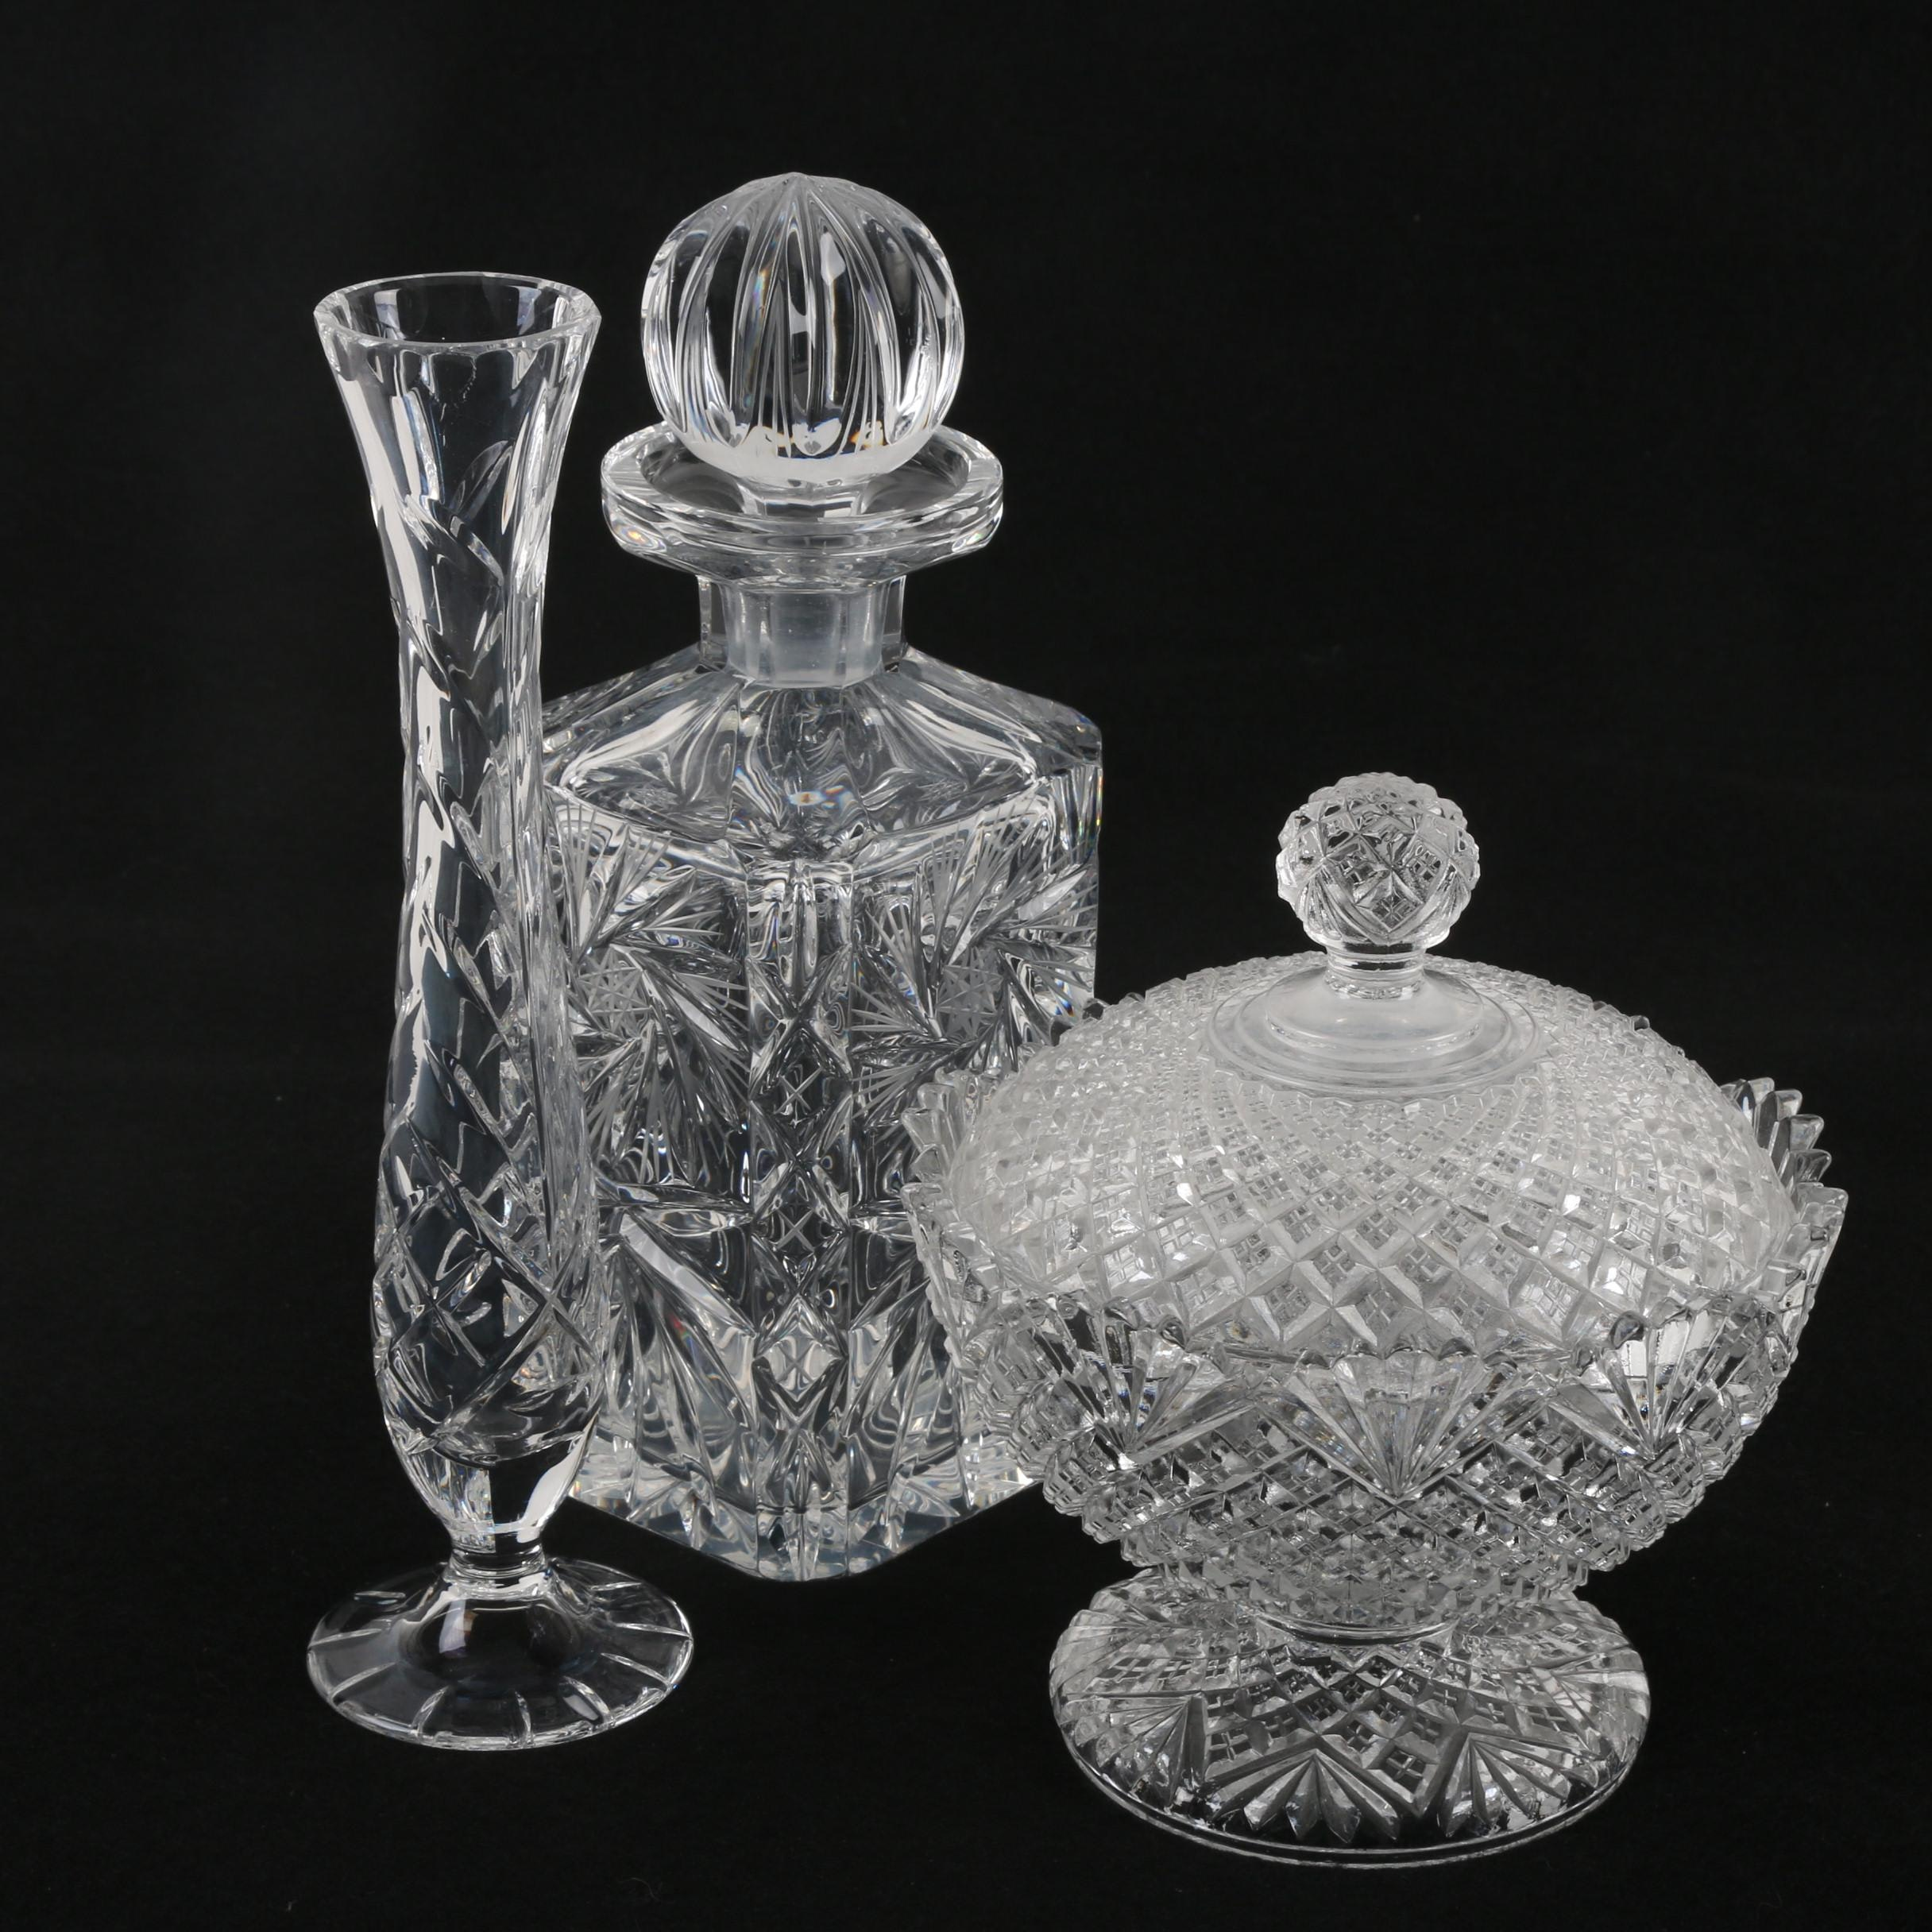 Crystal Decanter and Vase with Vintage Pressed Glass Candy Dish